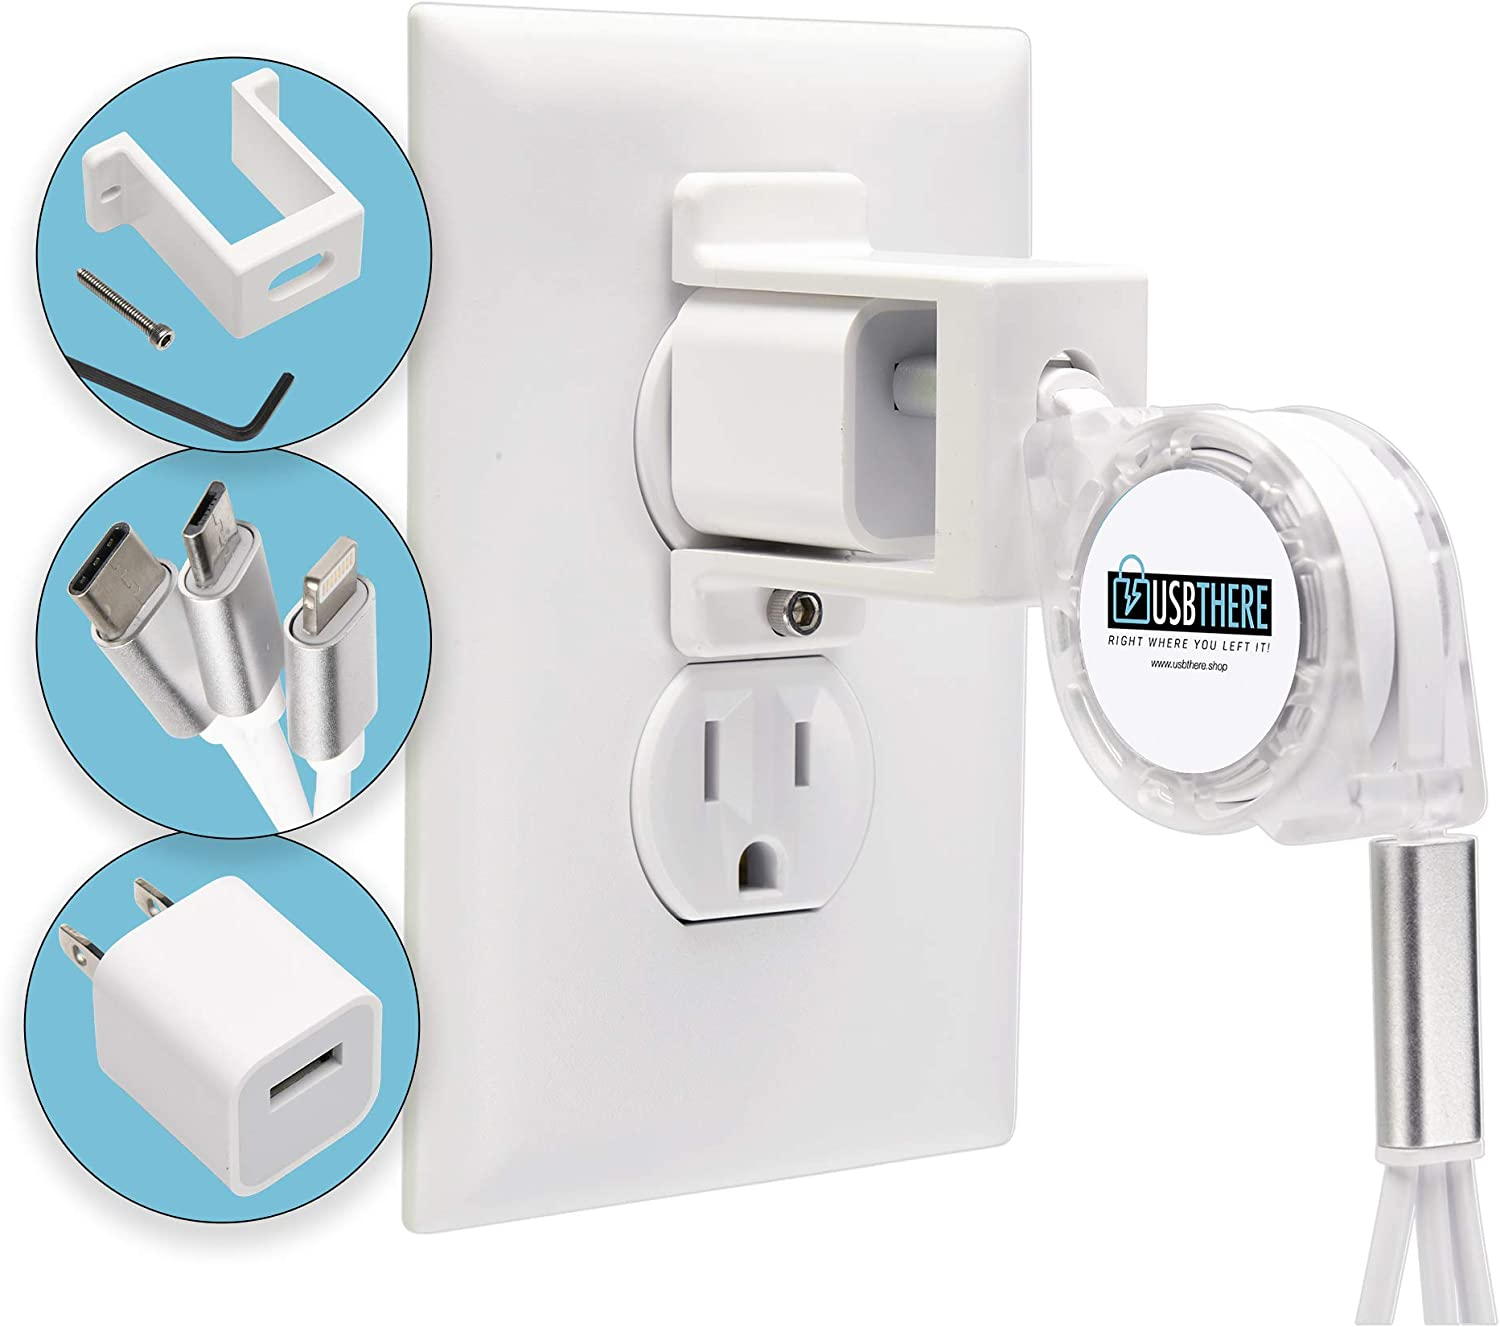 Limited 2021 spring and summer new price USBthere Cell Phone Charger Lock with Compatible 2 iPhon Pack